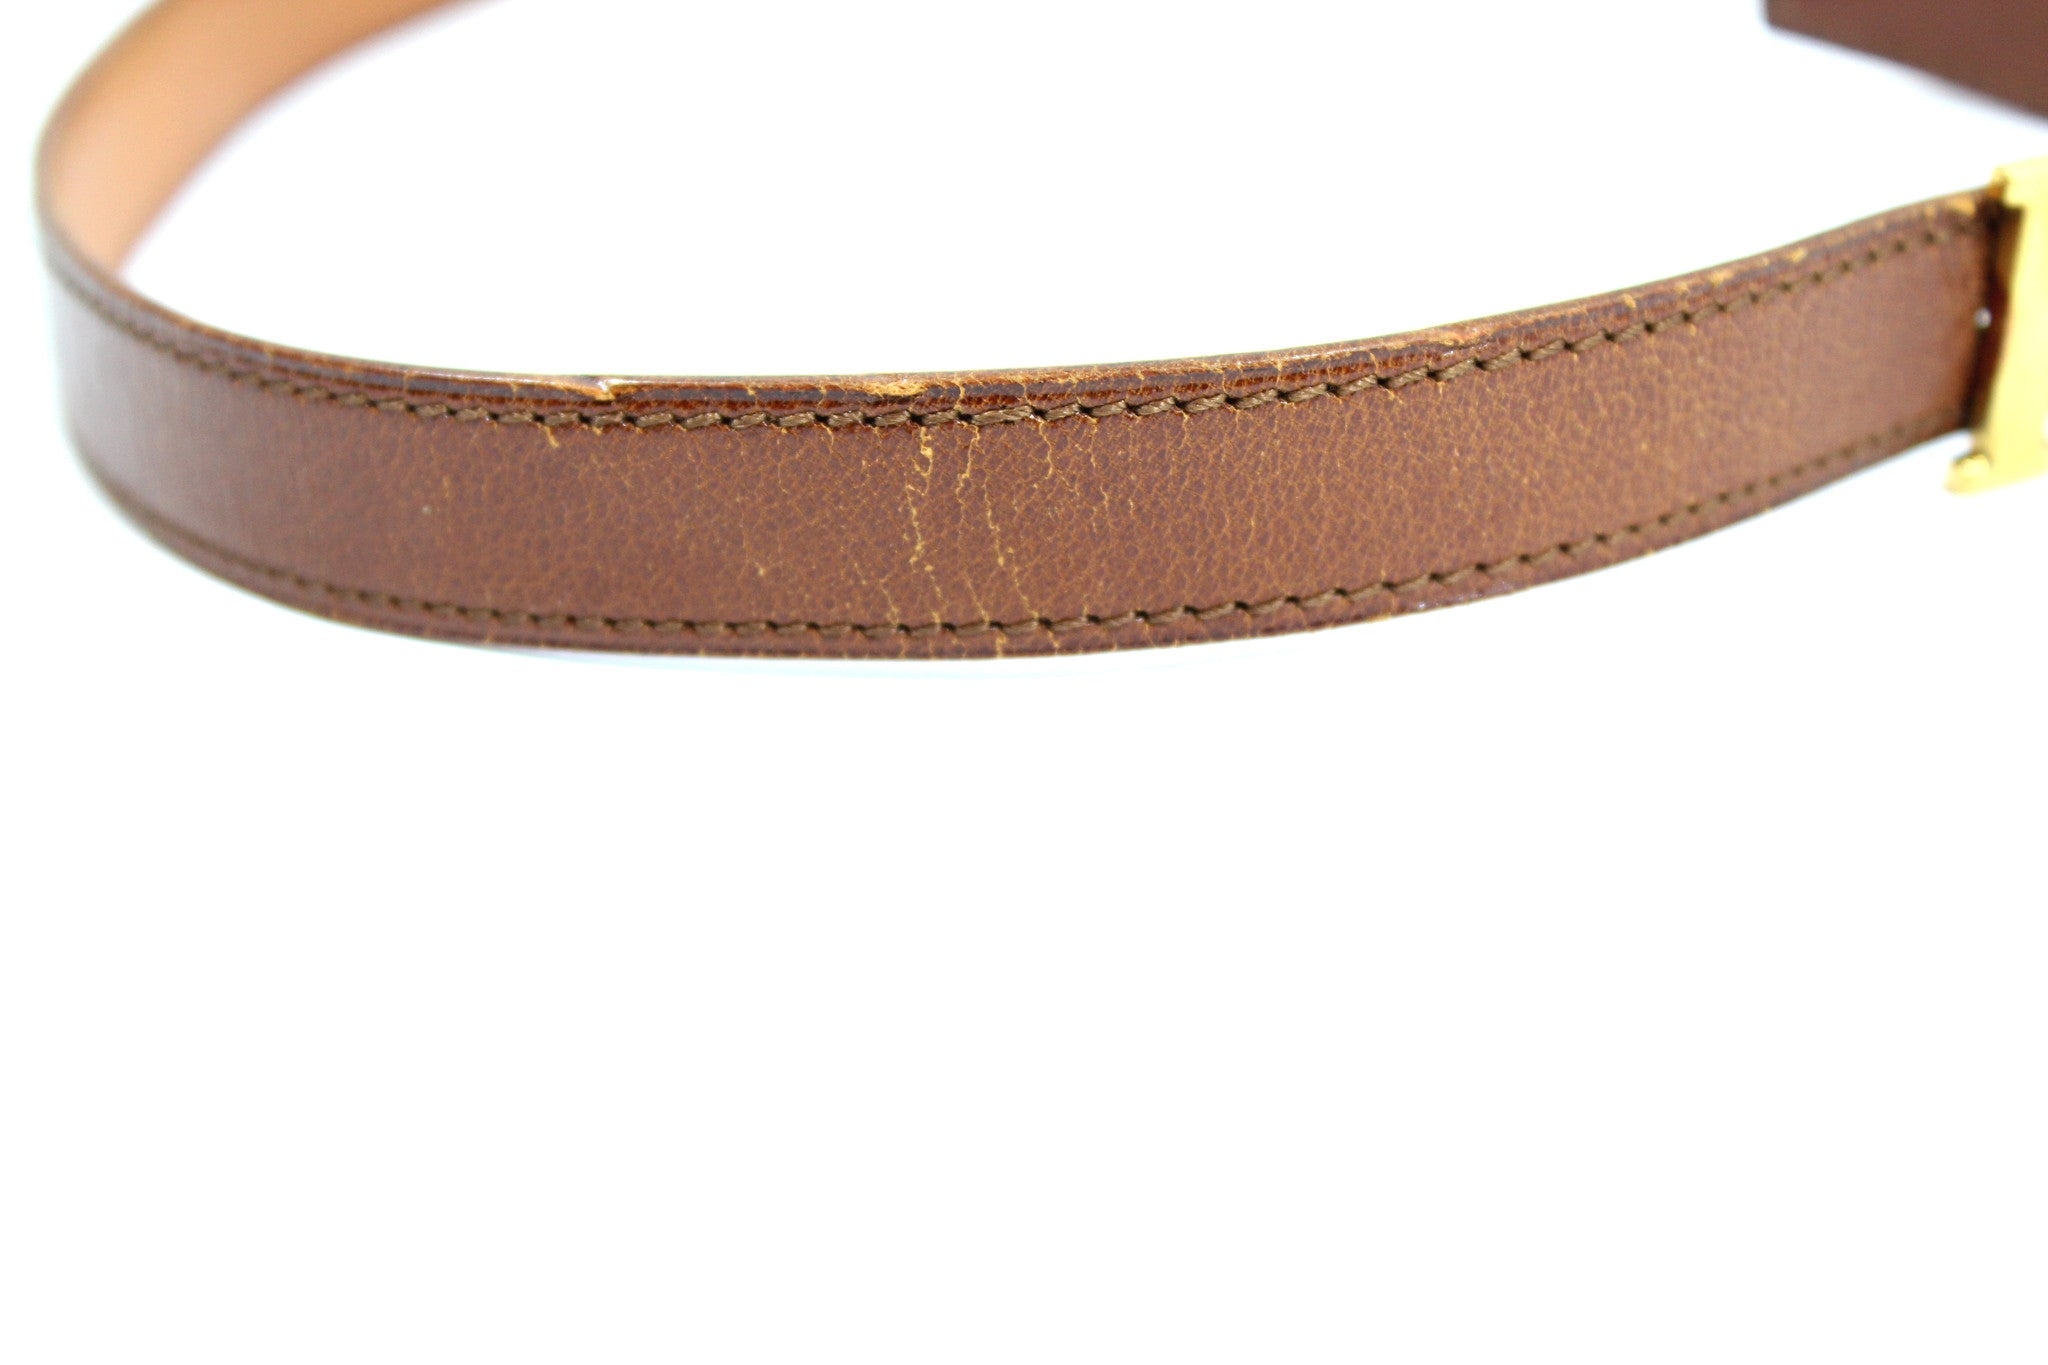 ~done~ Hermes Thin Brown Leather Belt w/ Gold Logo Buckle - Encore Consignment - 7